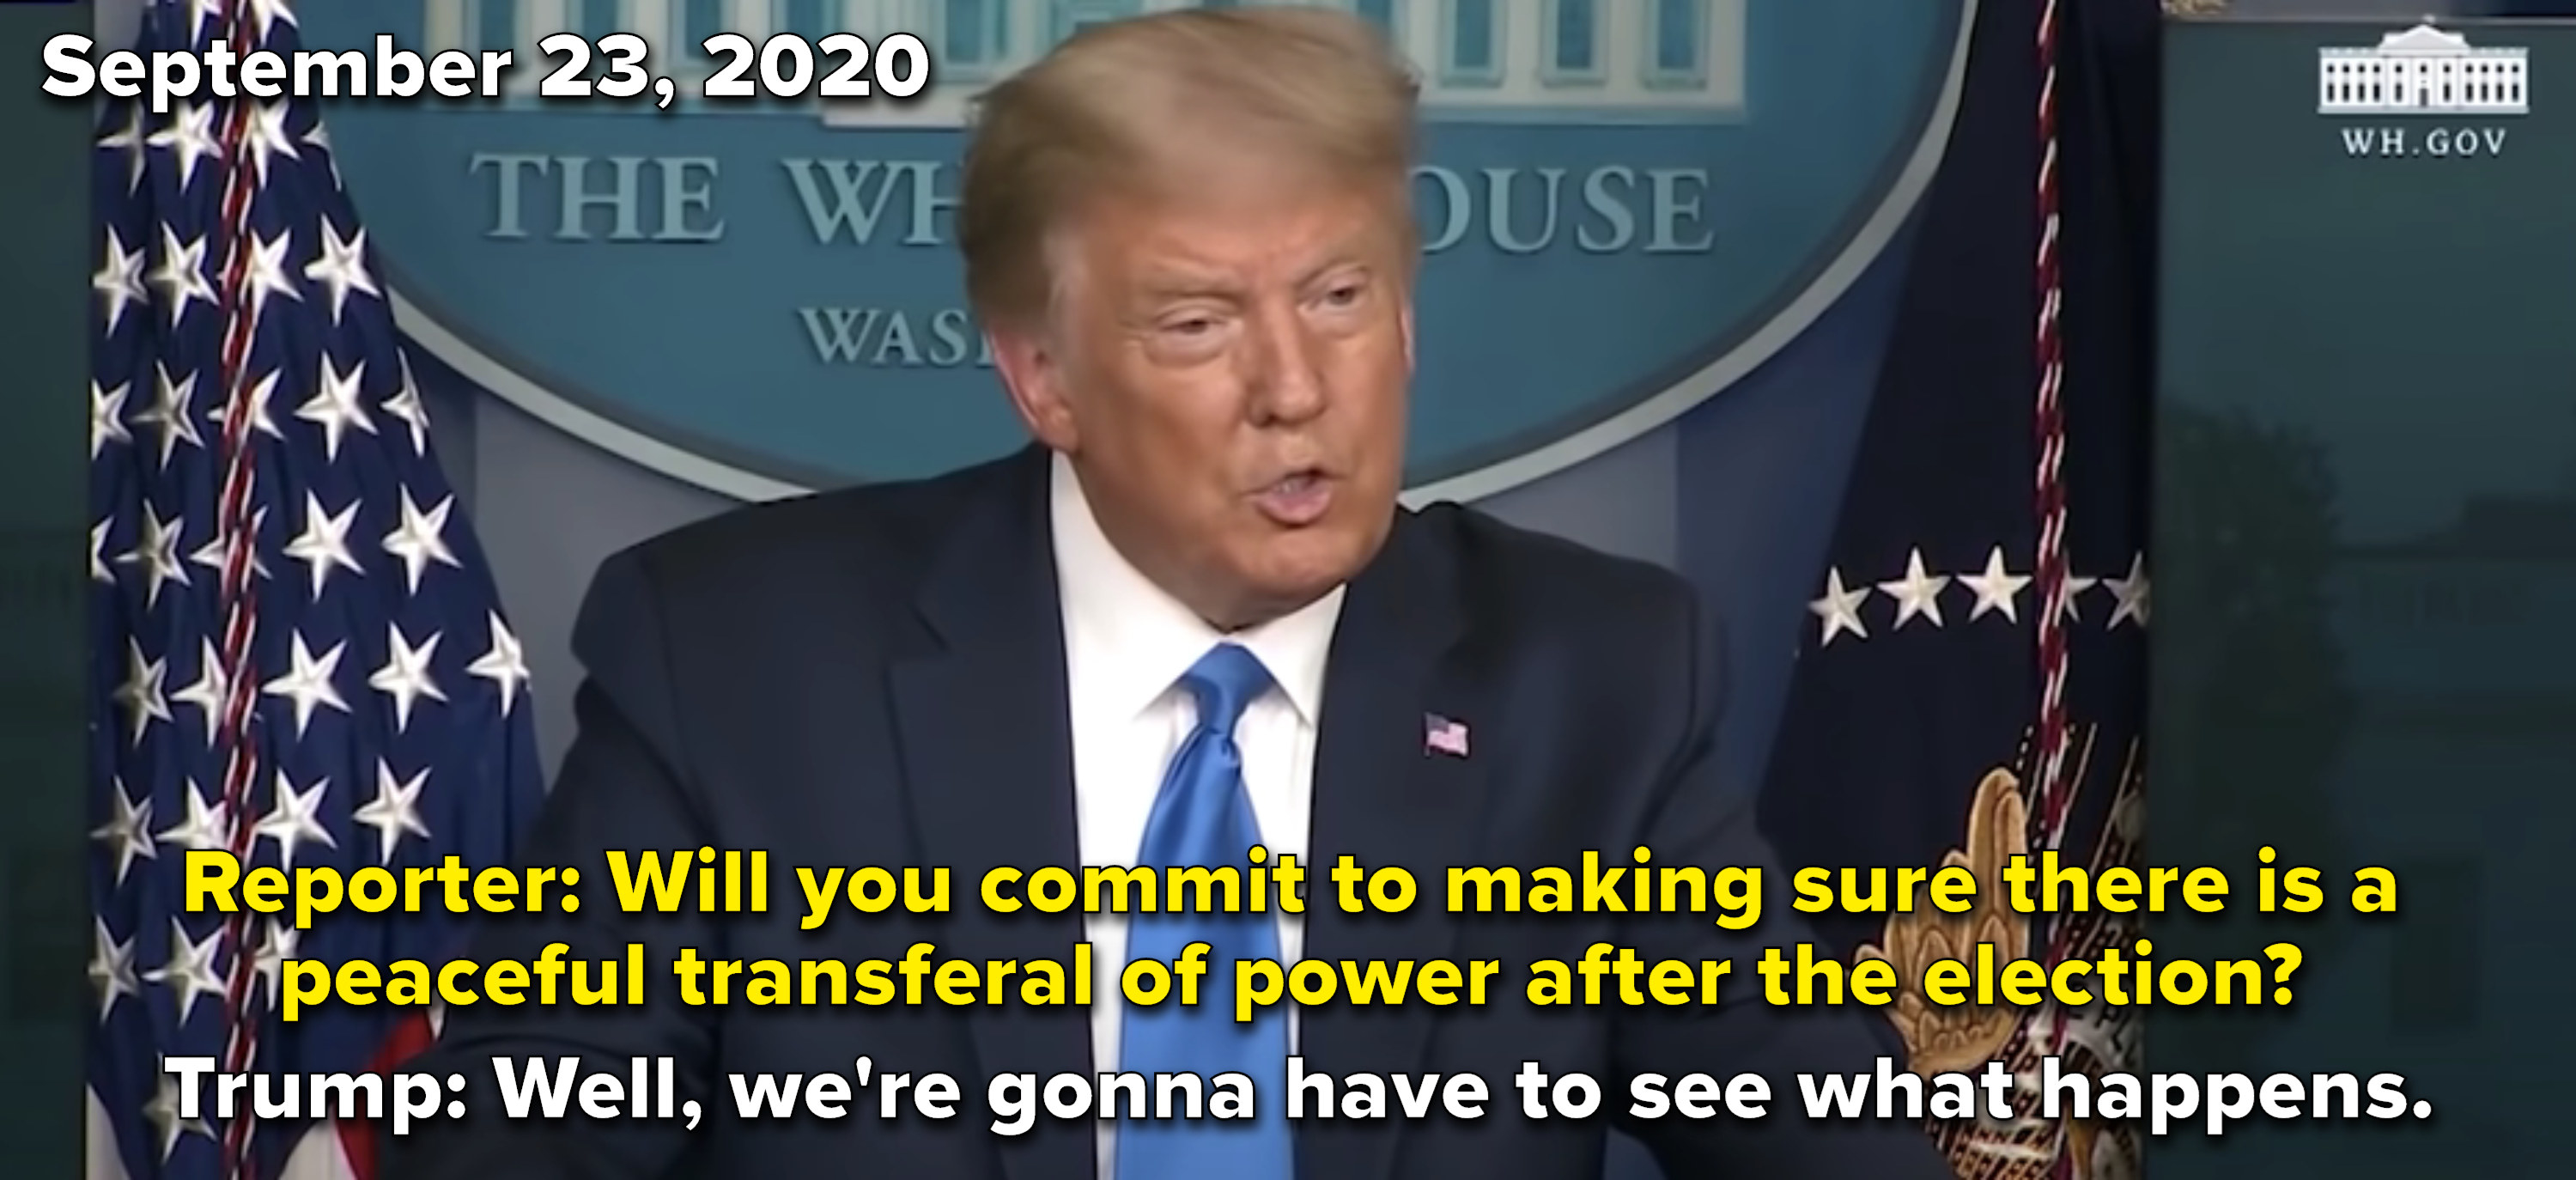 Trump at a press briefing saying that he won't commit to a peaceful transfer of power